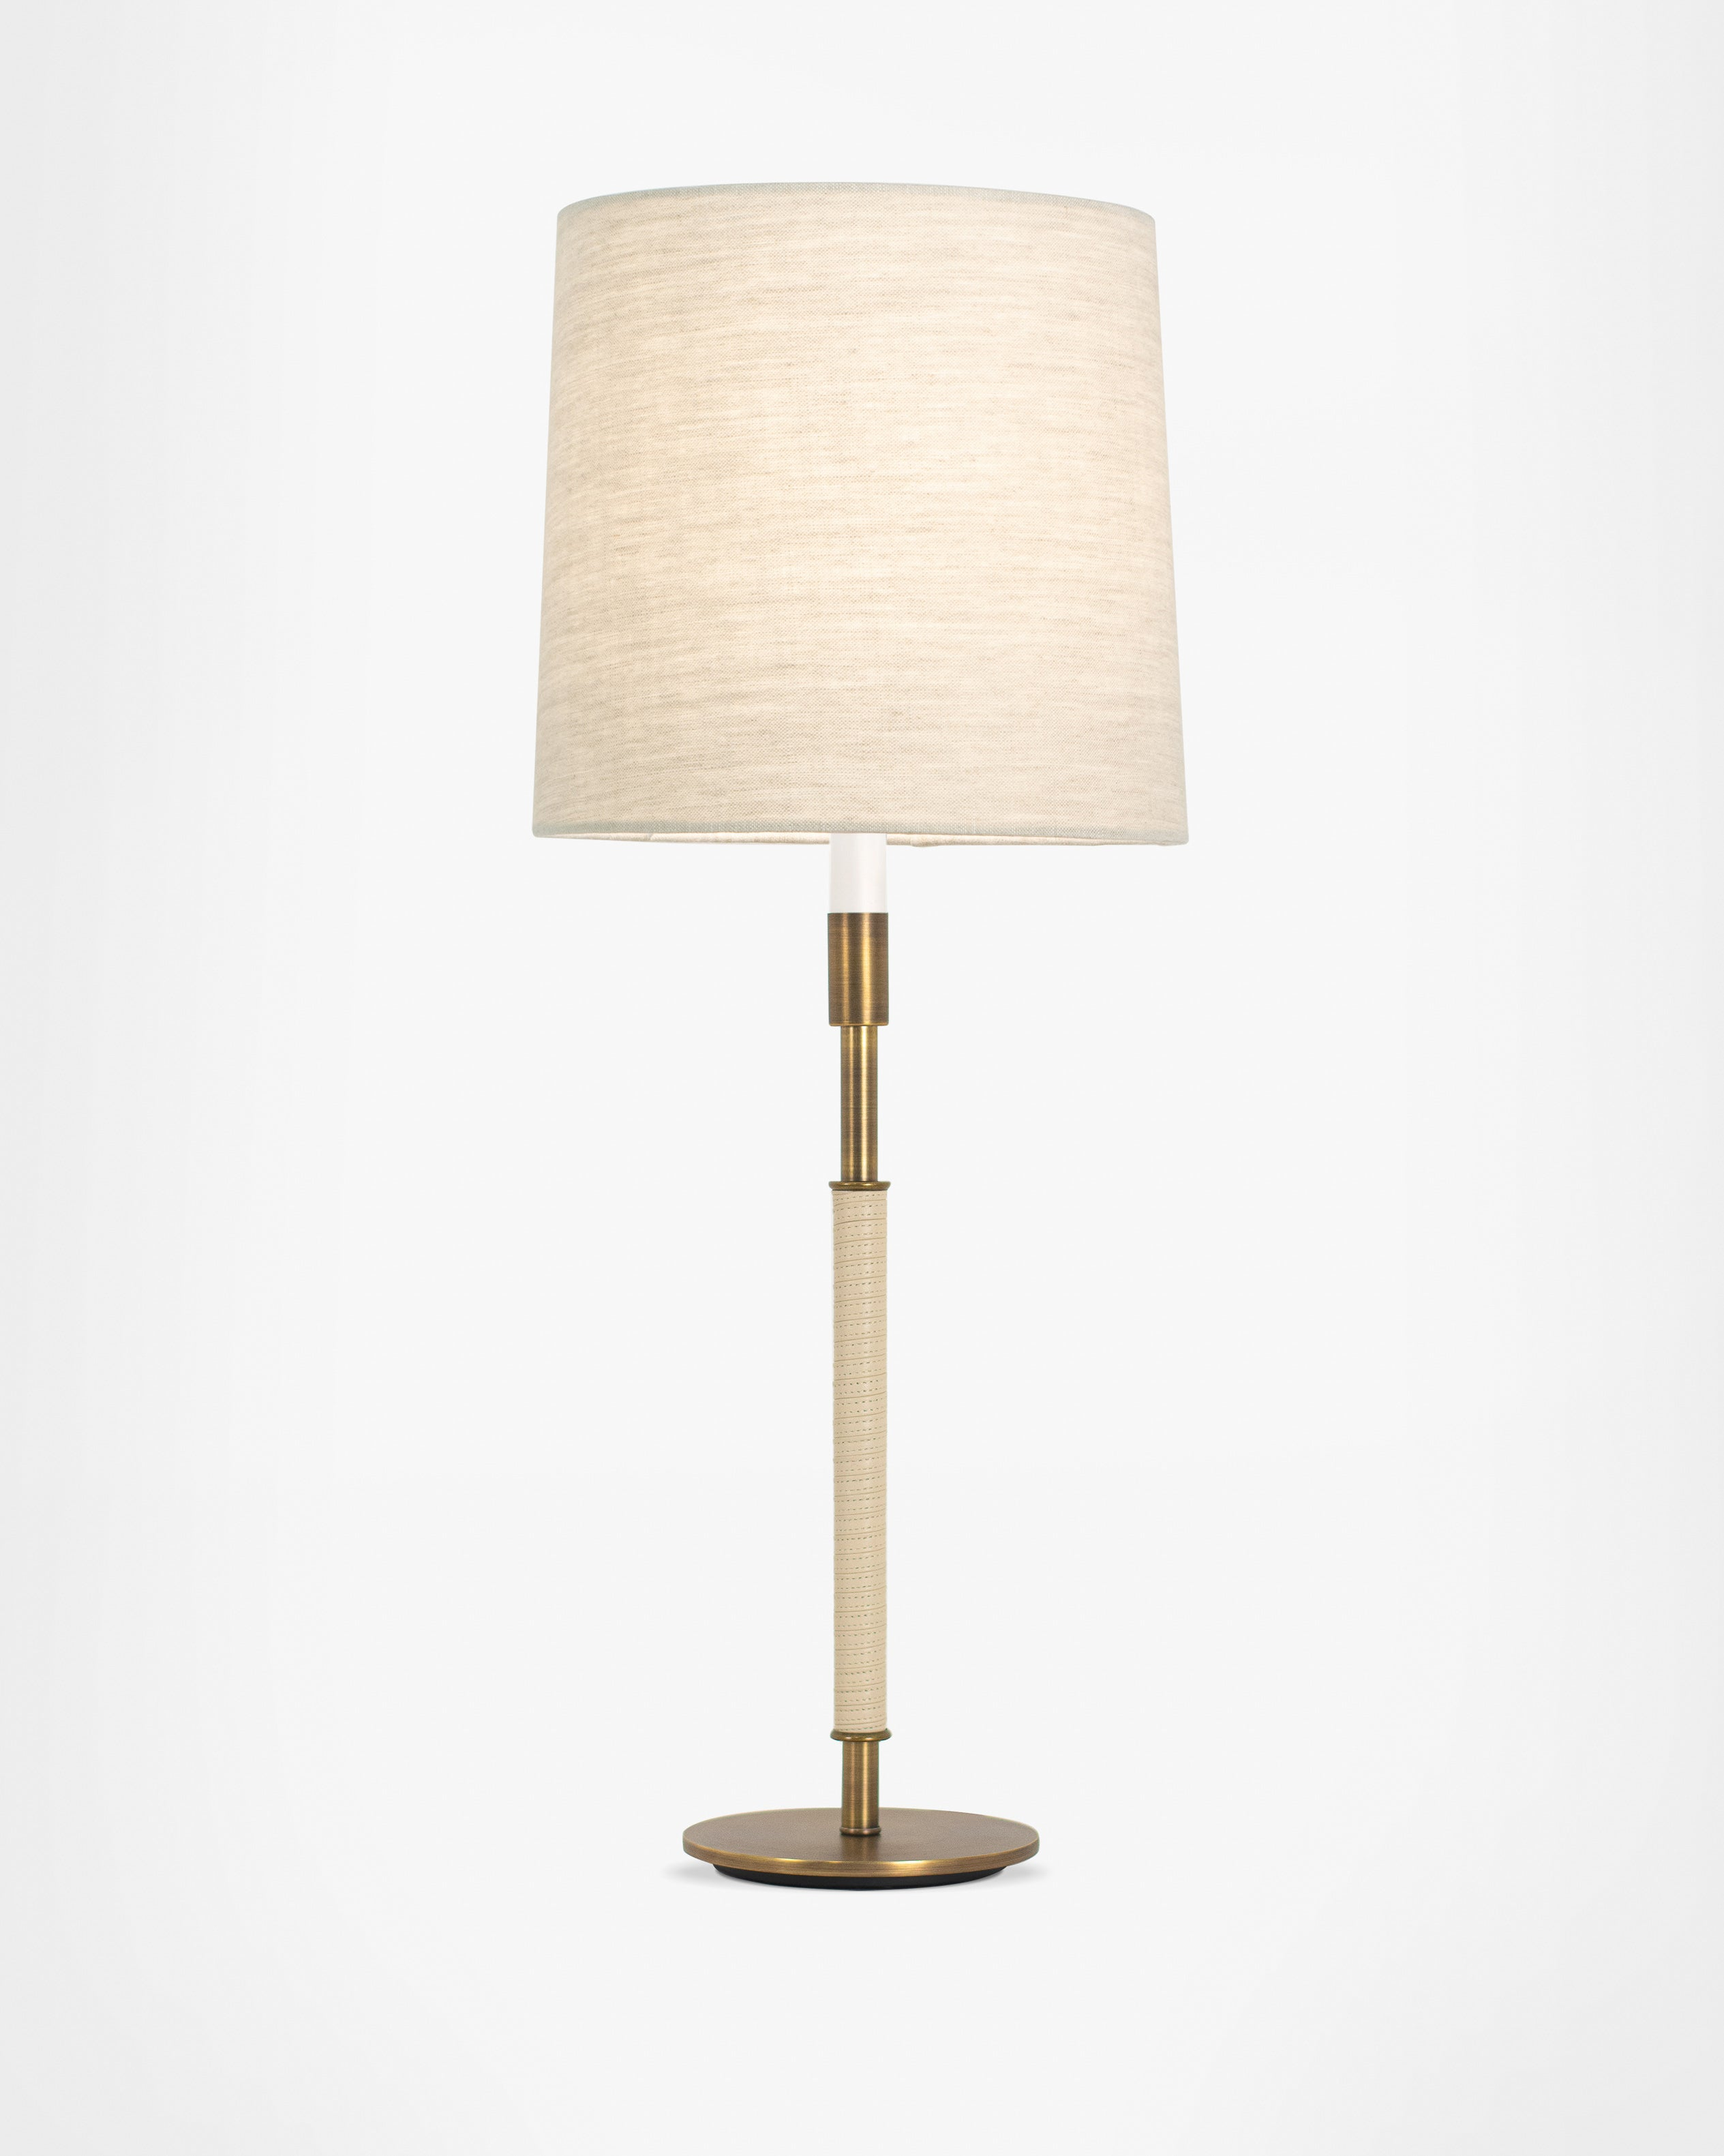 Light Antique Brass with Cream Leather and Natural Linen Shade